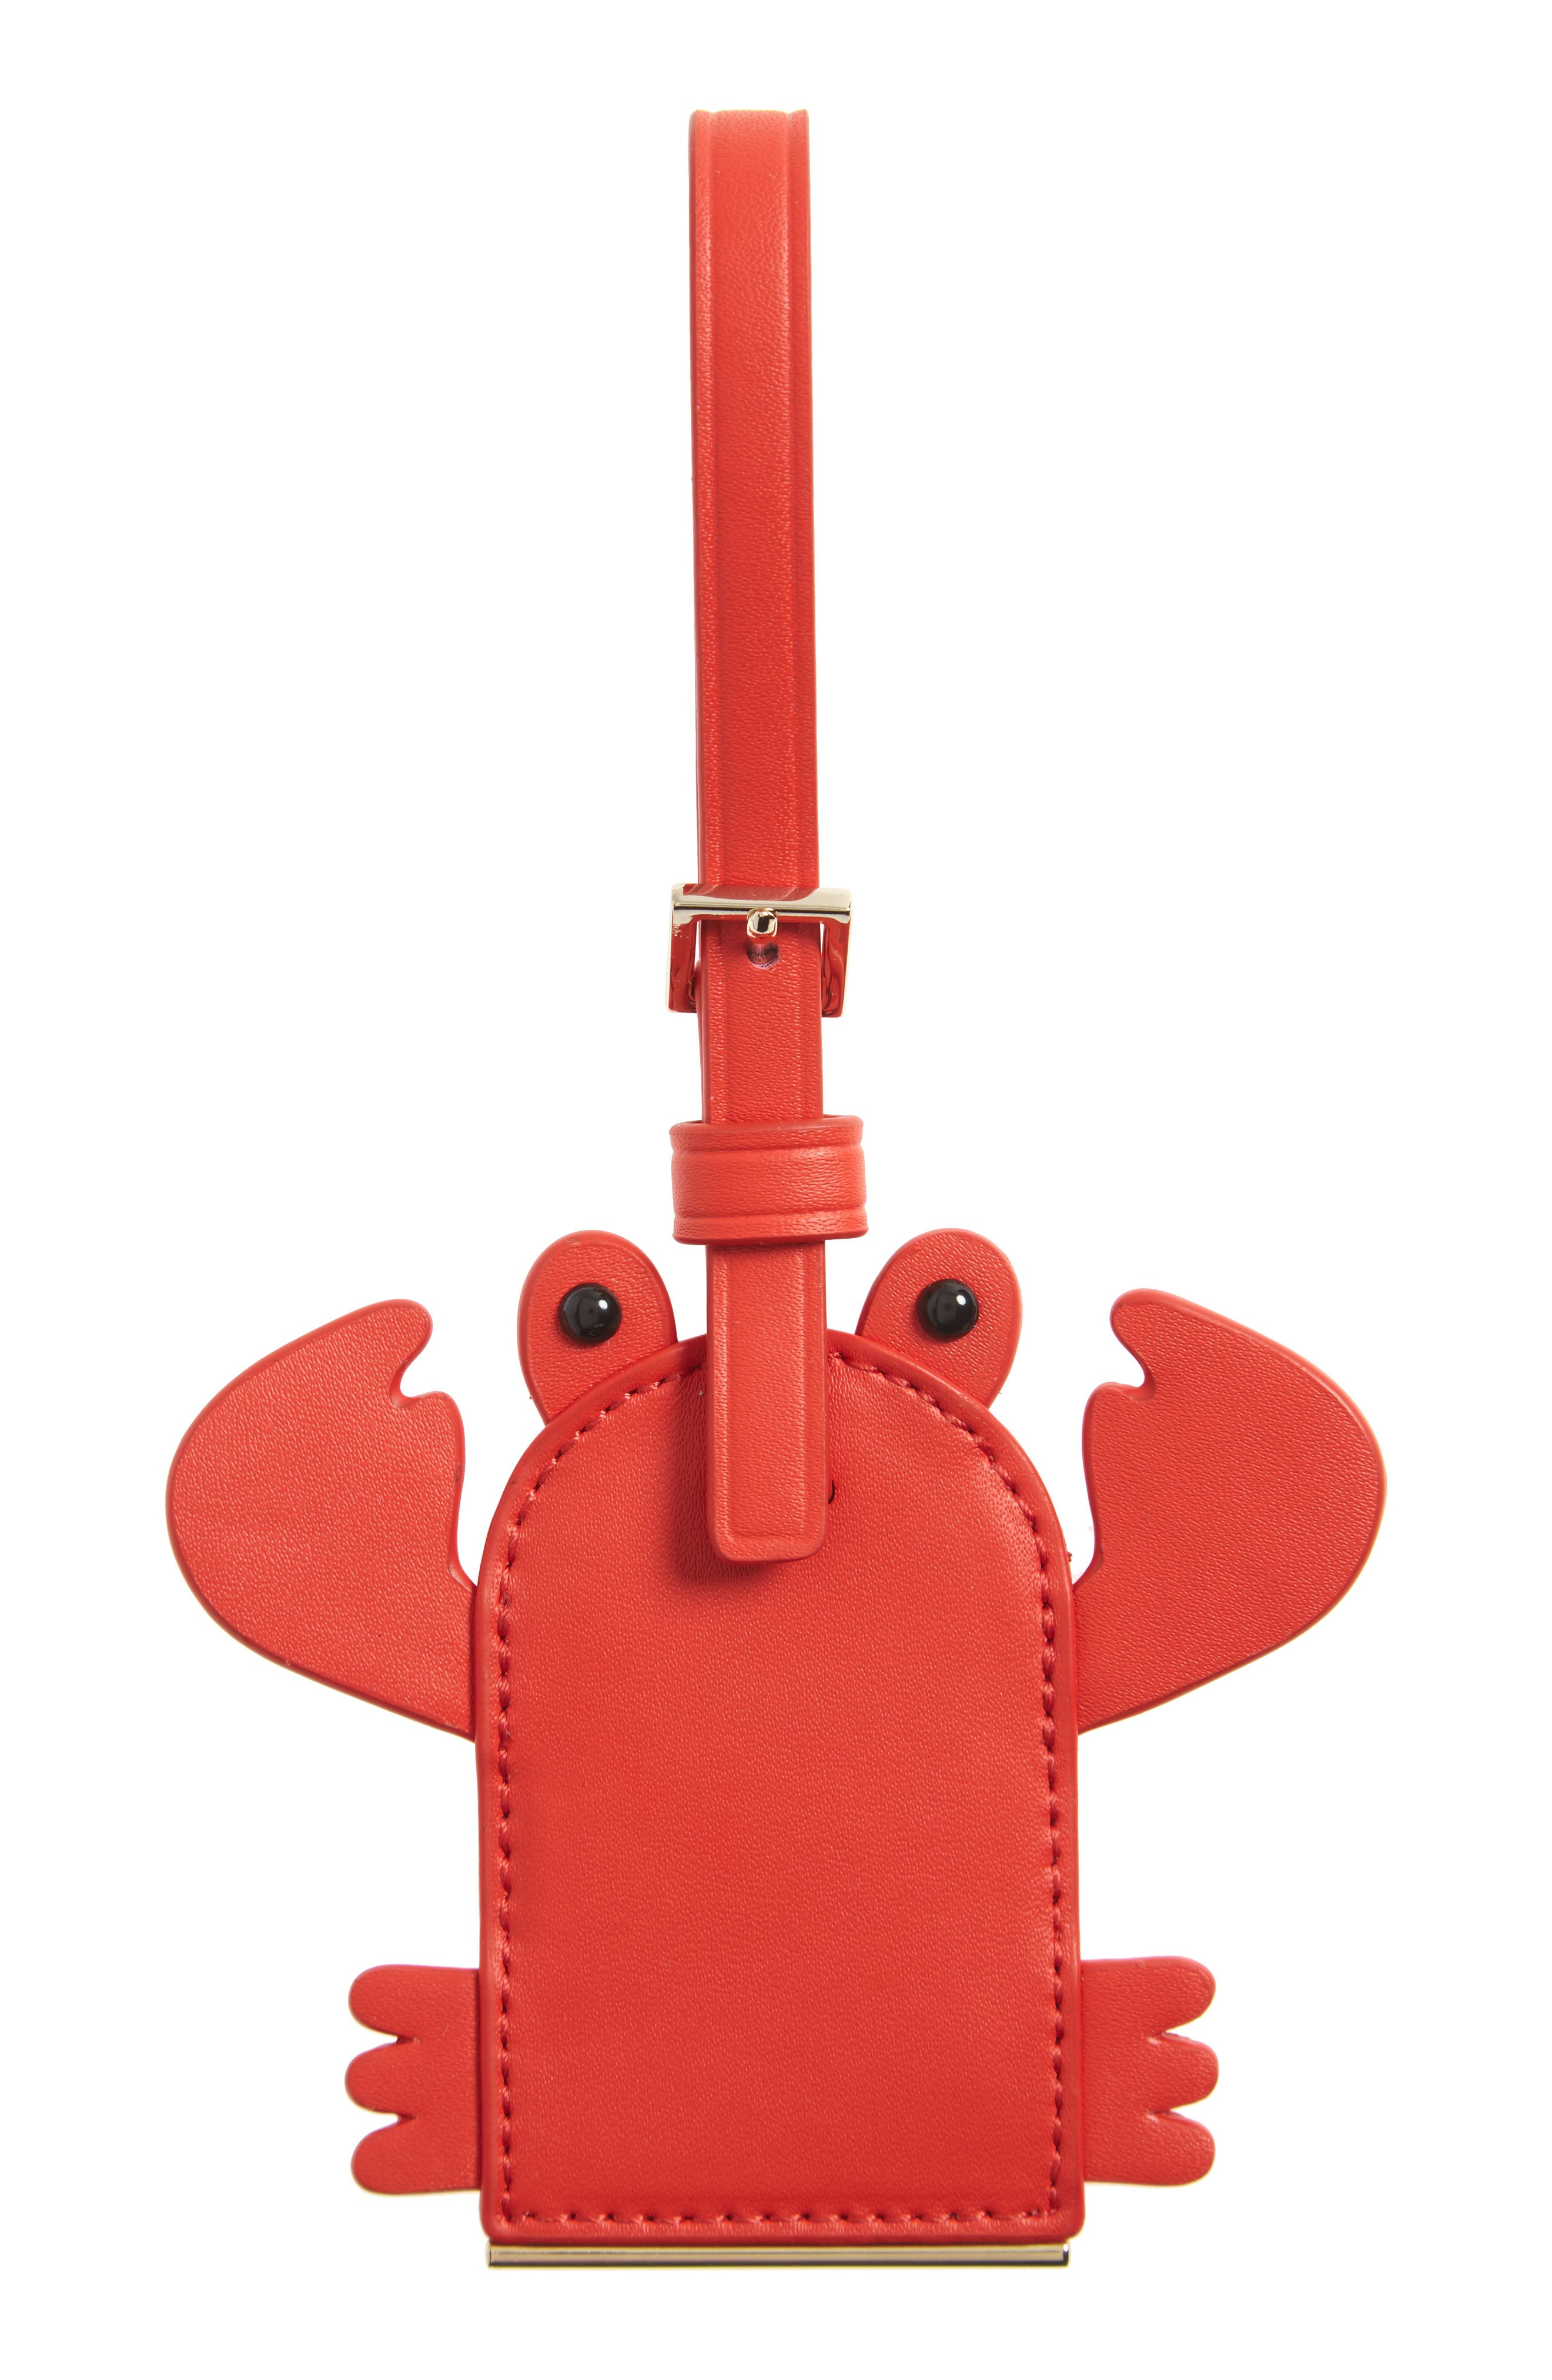 Kate Spade New York S Thing Crab Leather Luggage Tag